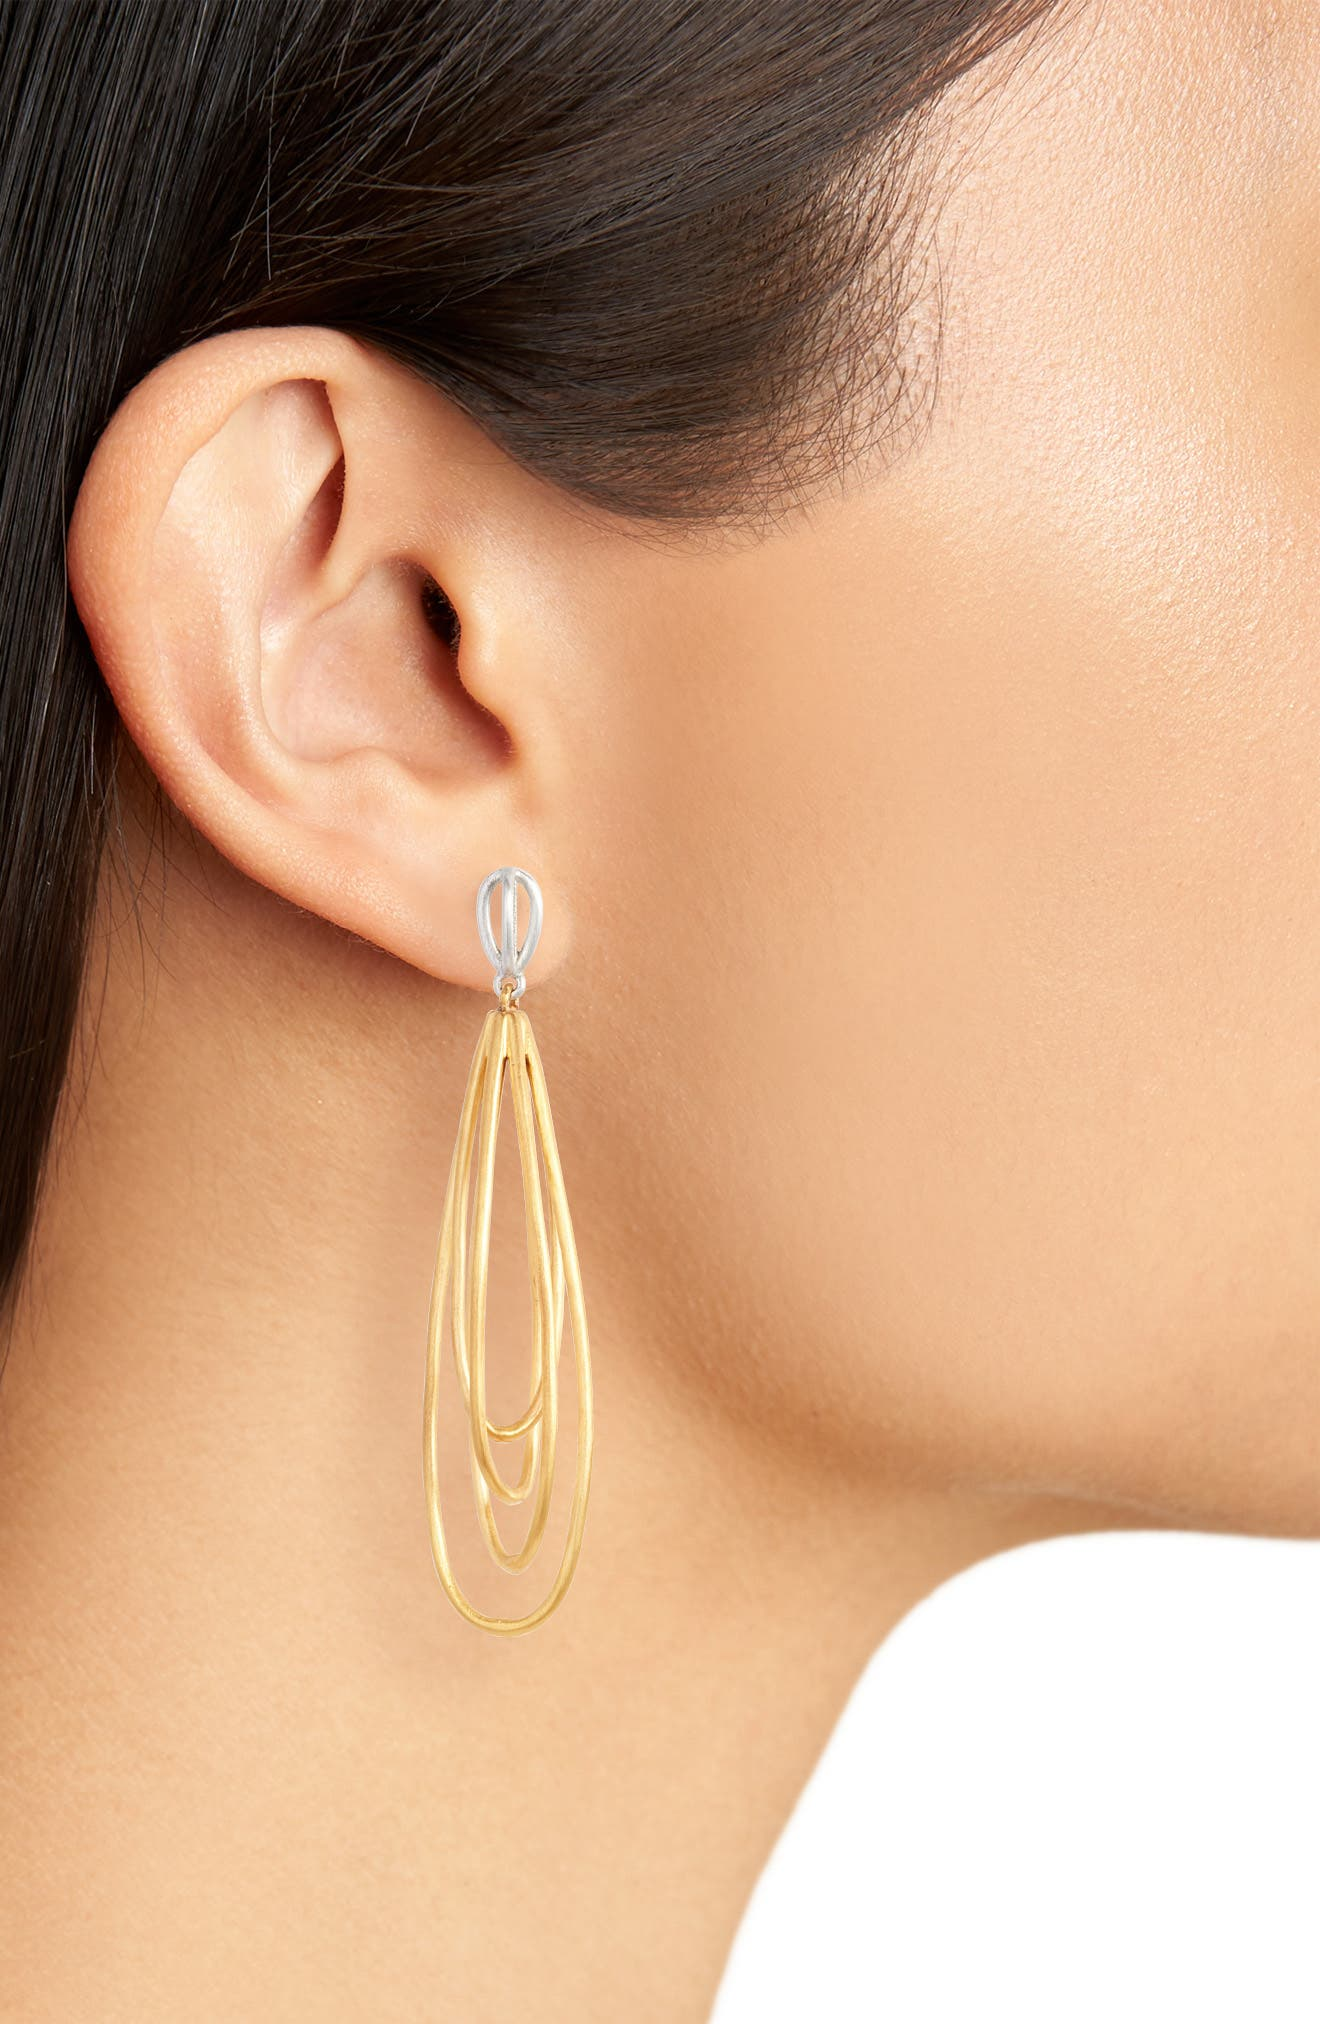 Inerlacing Drop Earrings,                             Alternate thumbnail 2, color,                             Gold/ Silver